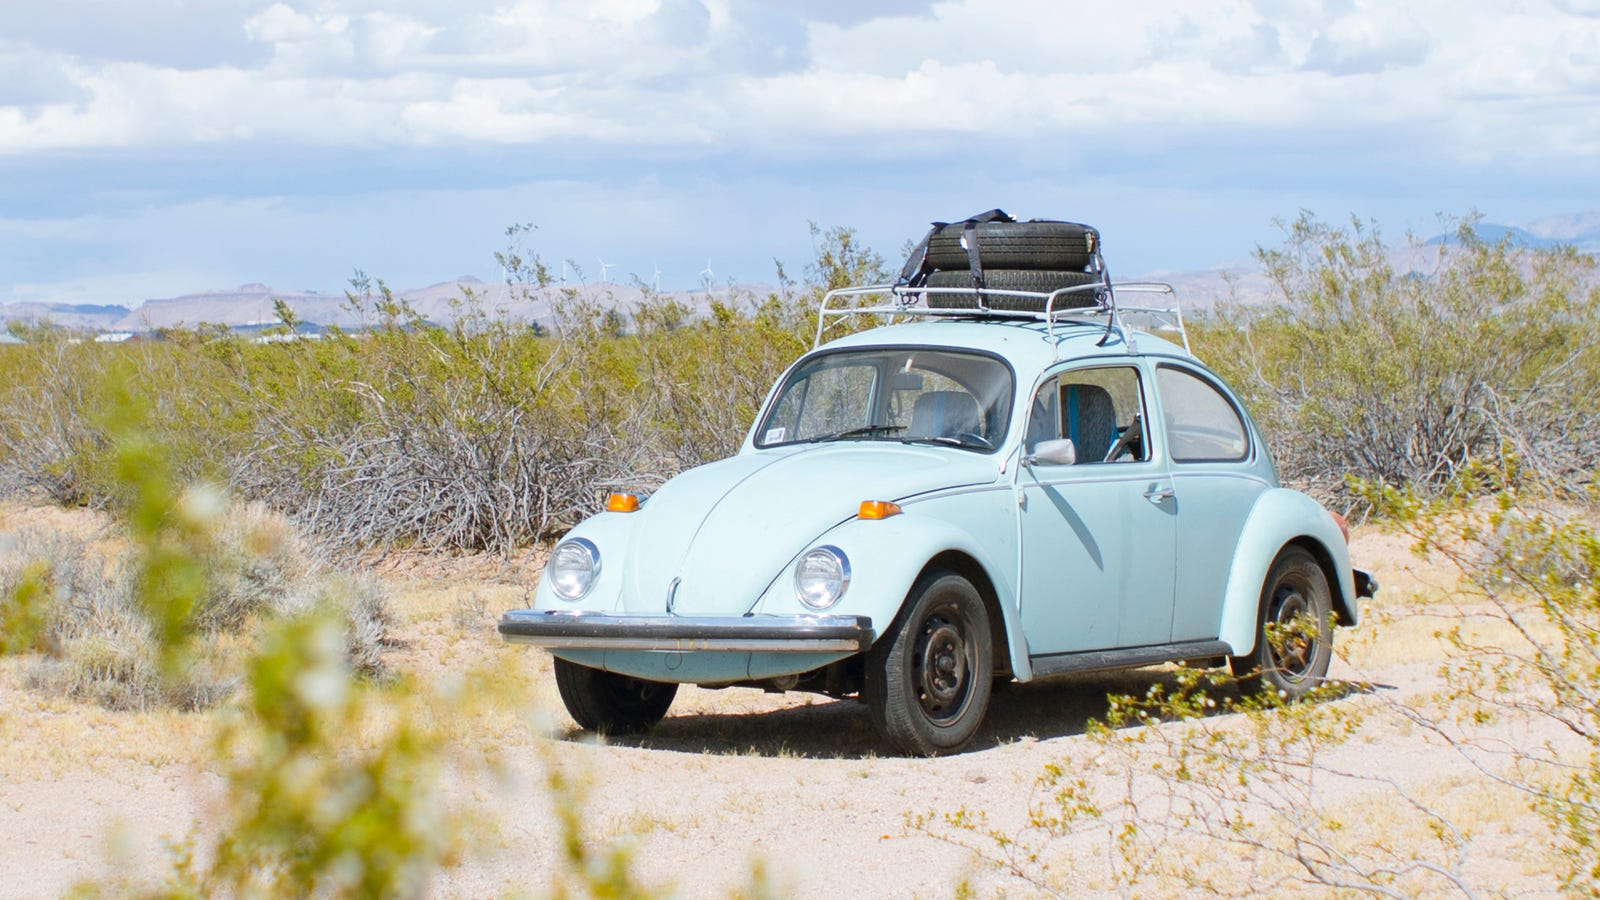 I Am Flying To Arkansas To Get My 1974 Volkswagen That Was Stranded For A Year